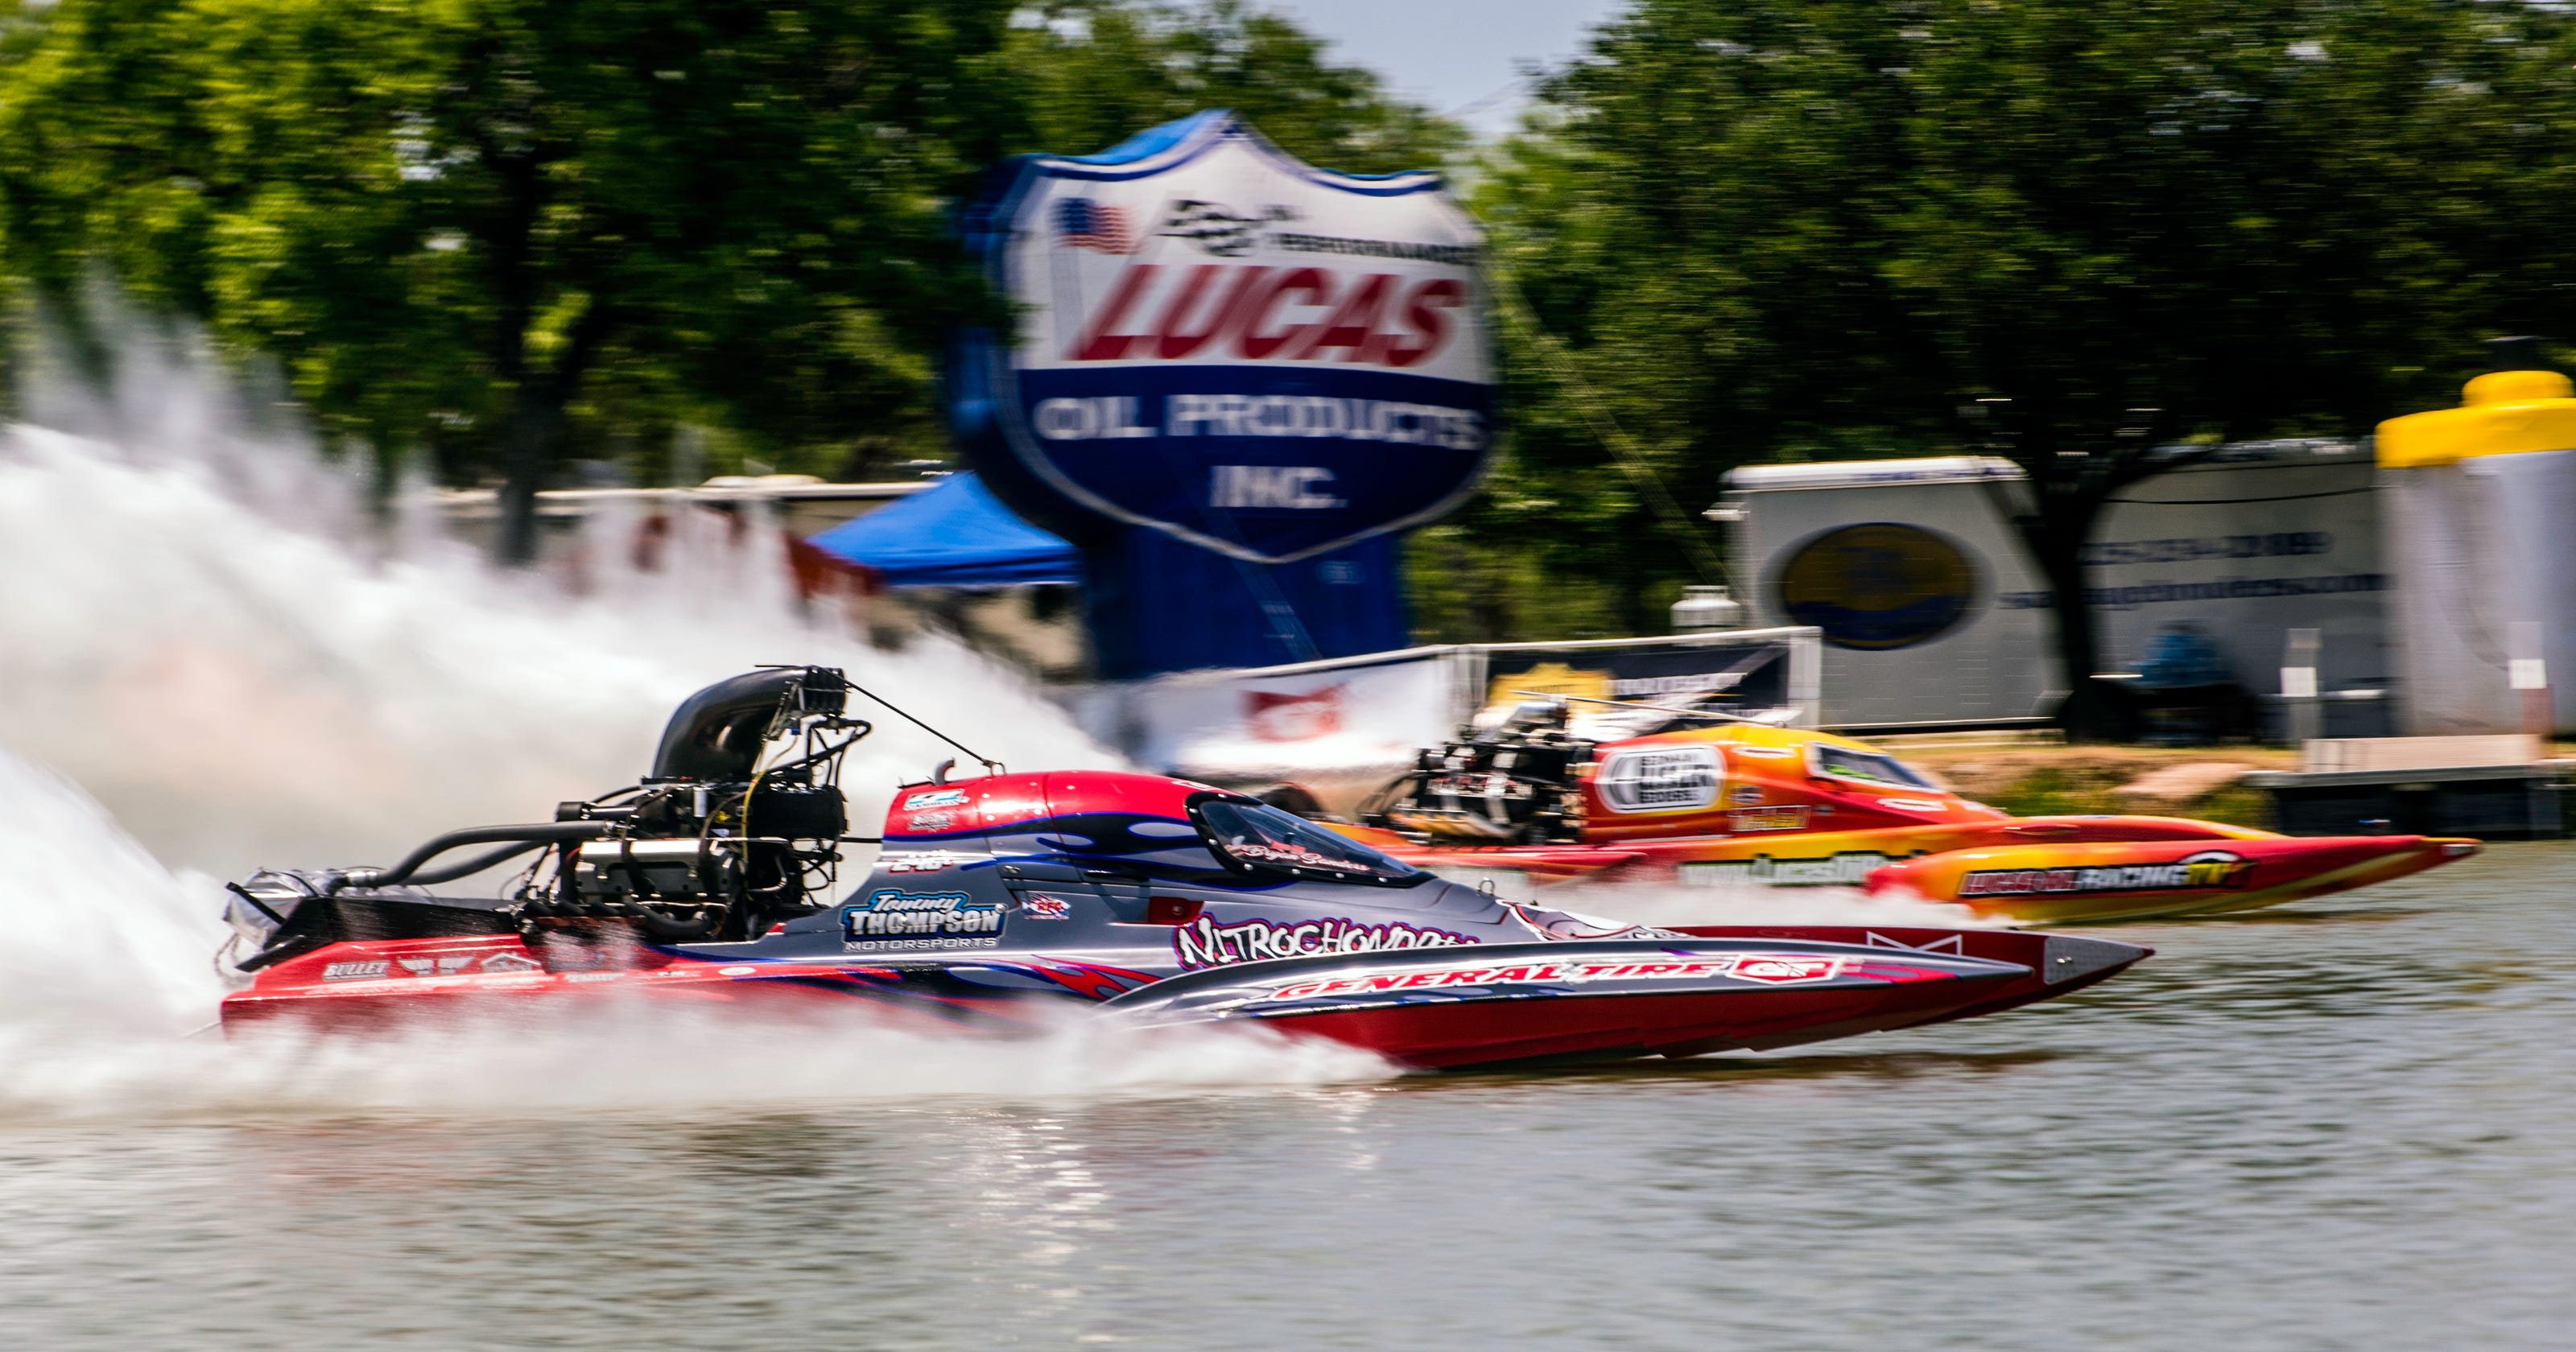 Lucas Oil Drag Boat Racing will end after 2018